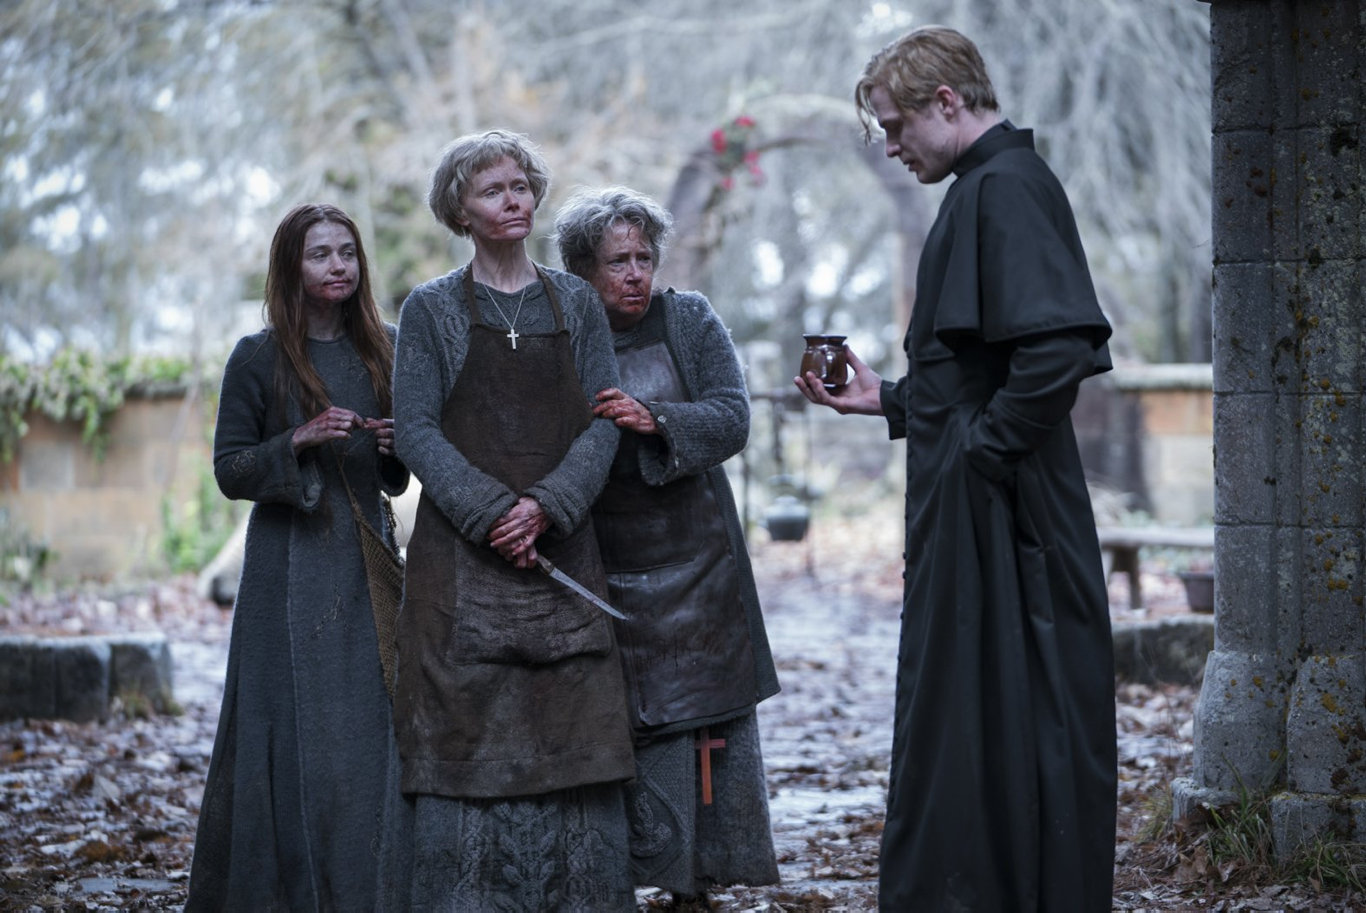 Jessica Barden, Essie Davis, Ann Dowd and Sam Reid in a scene from Lambs of God.